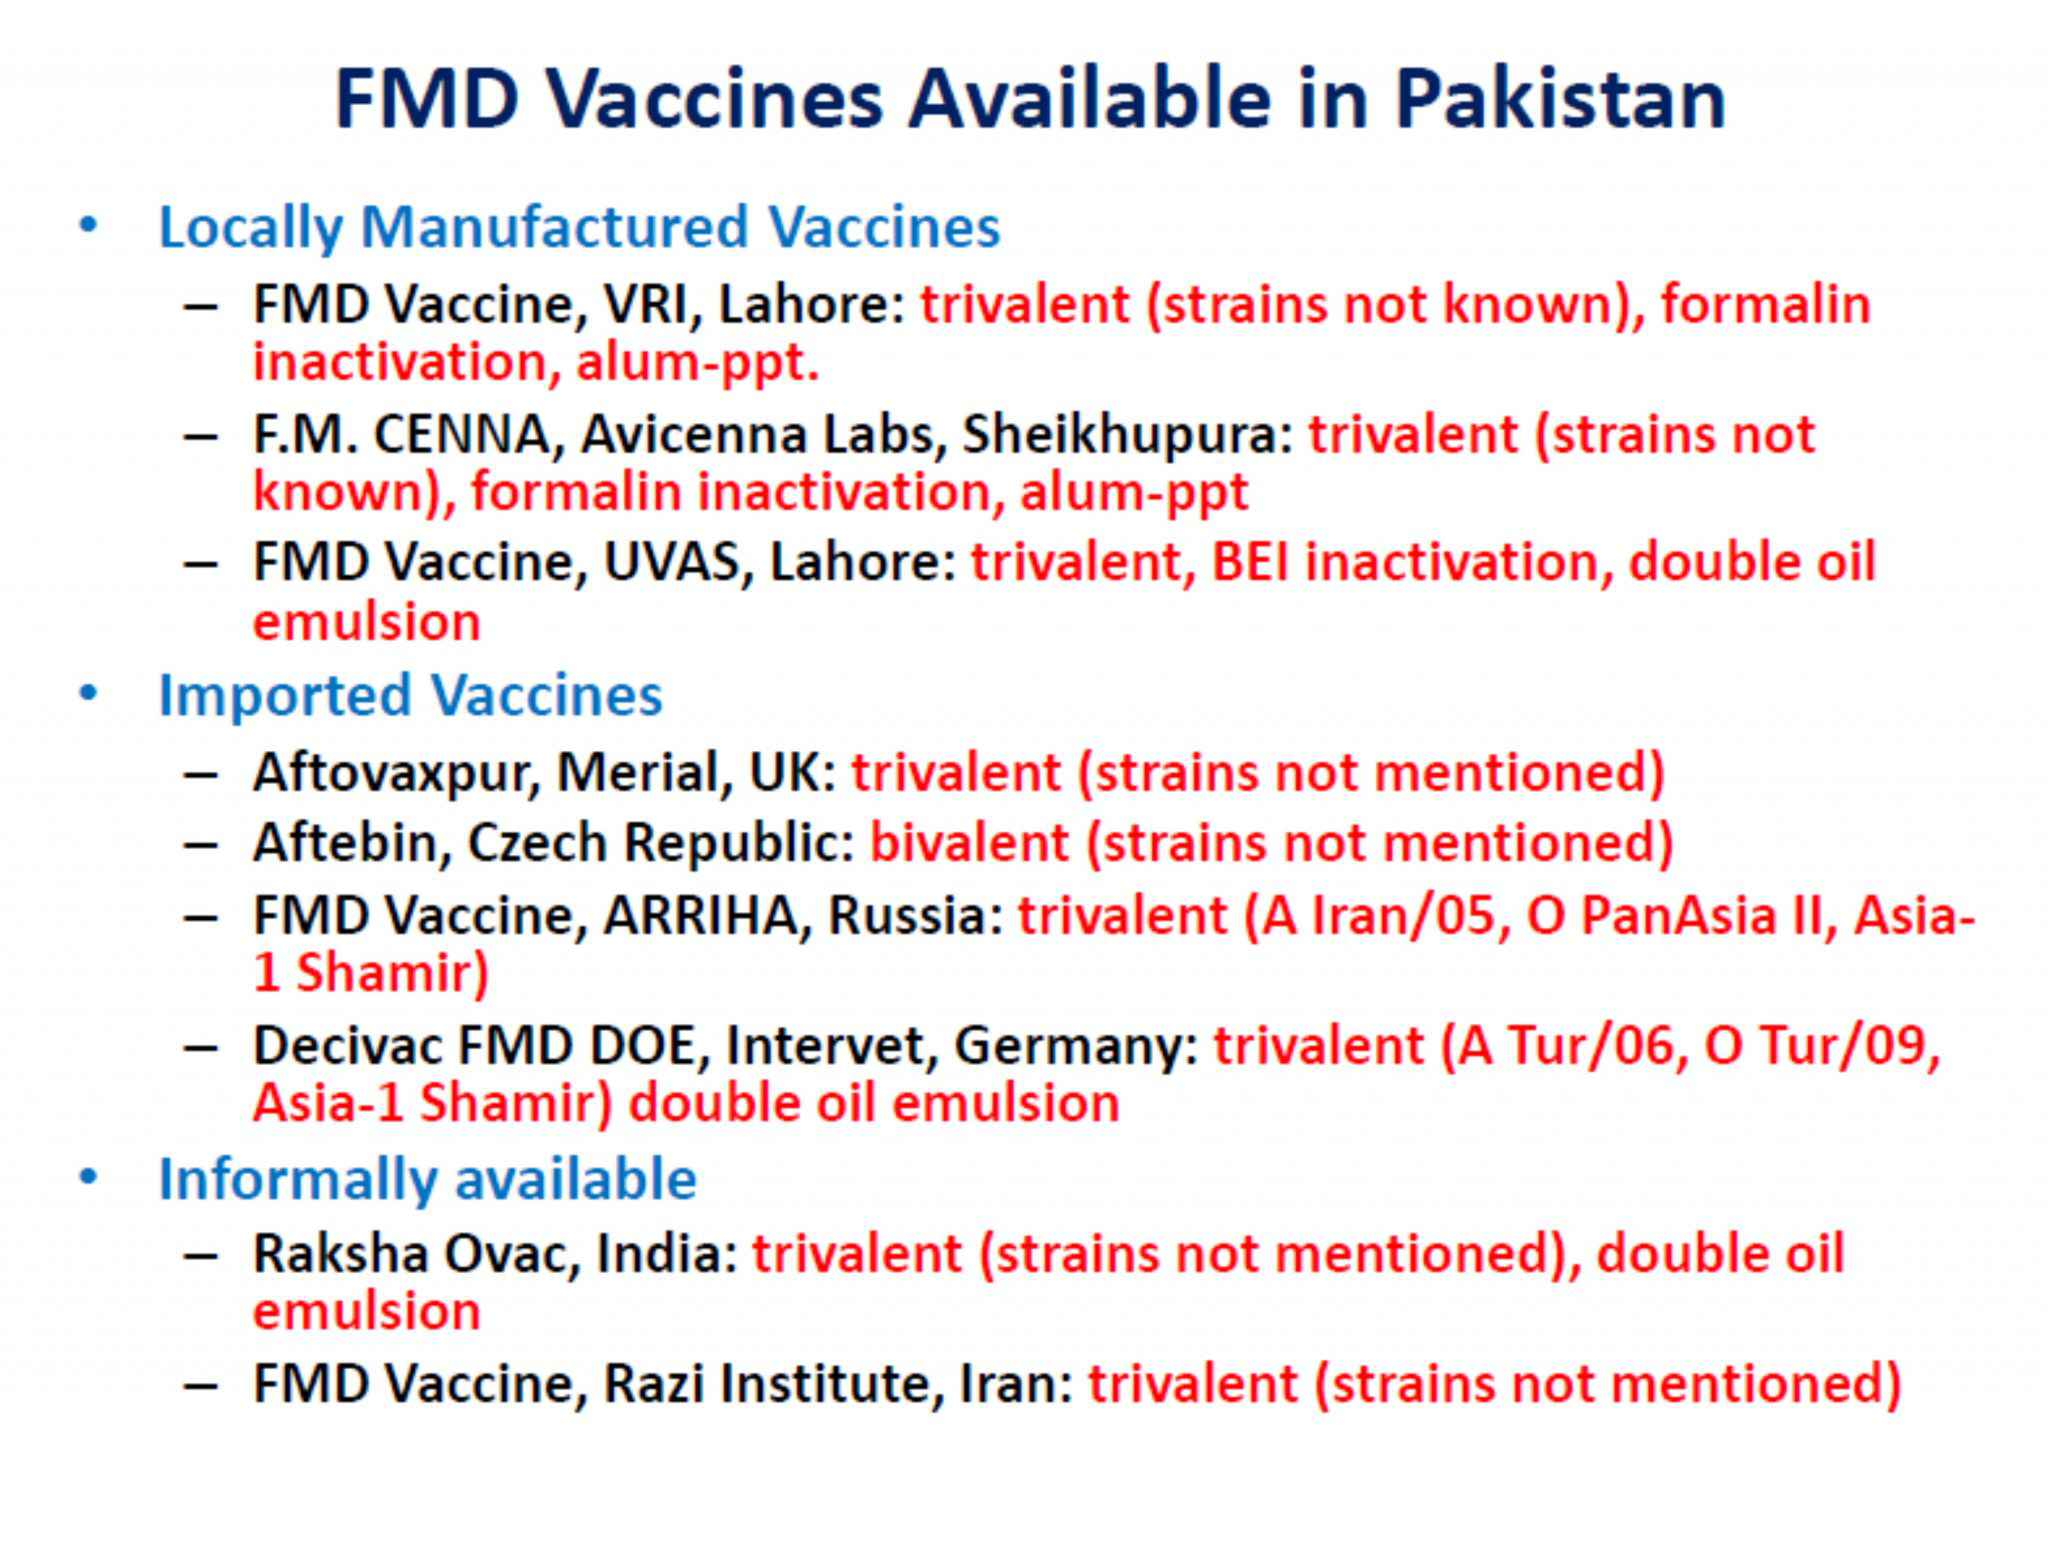 FMD Vaccines Worldwide